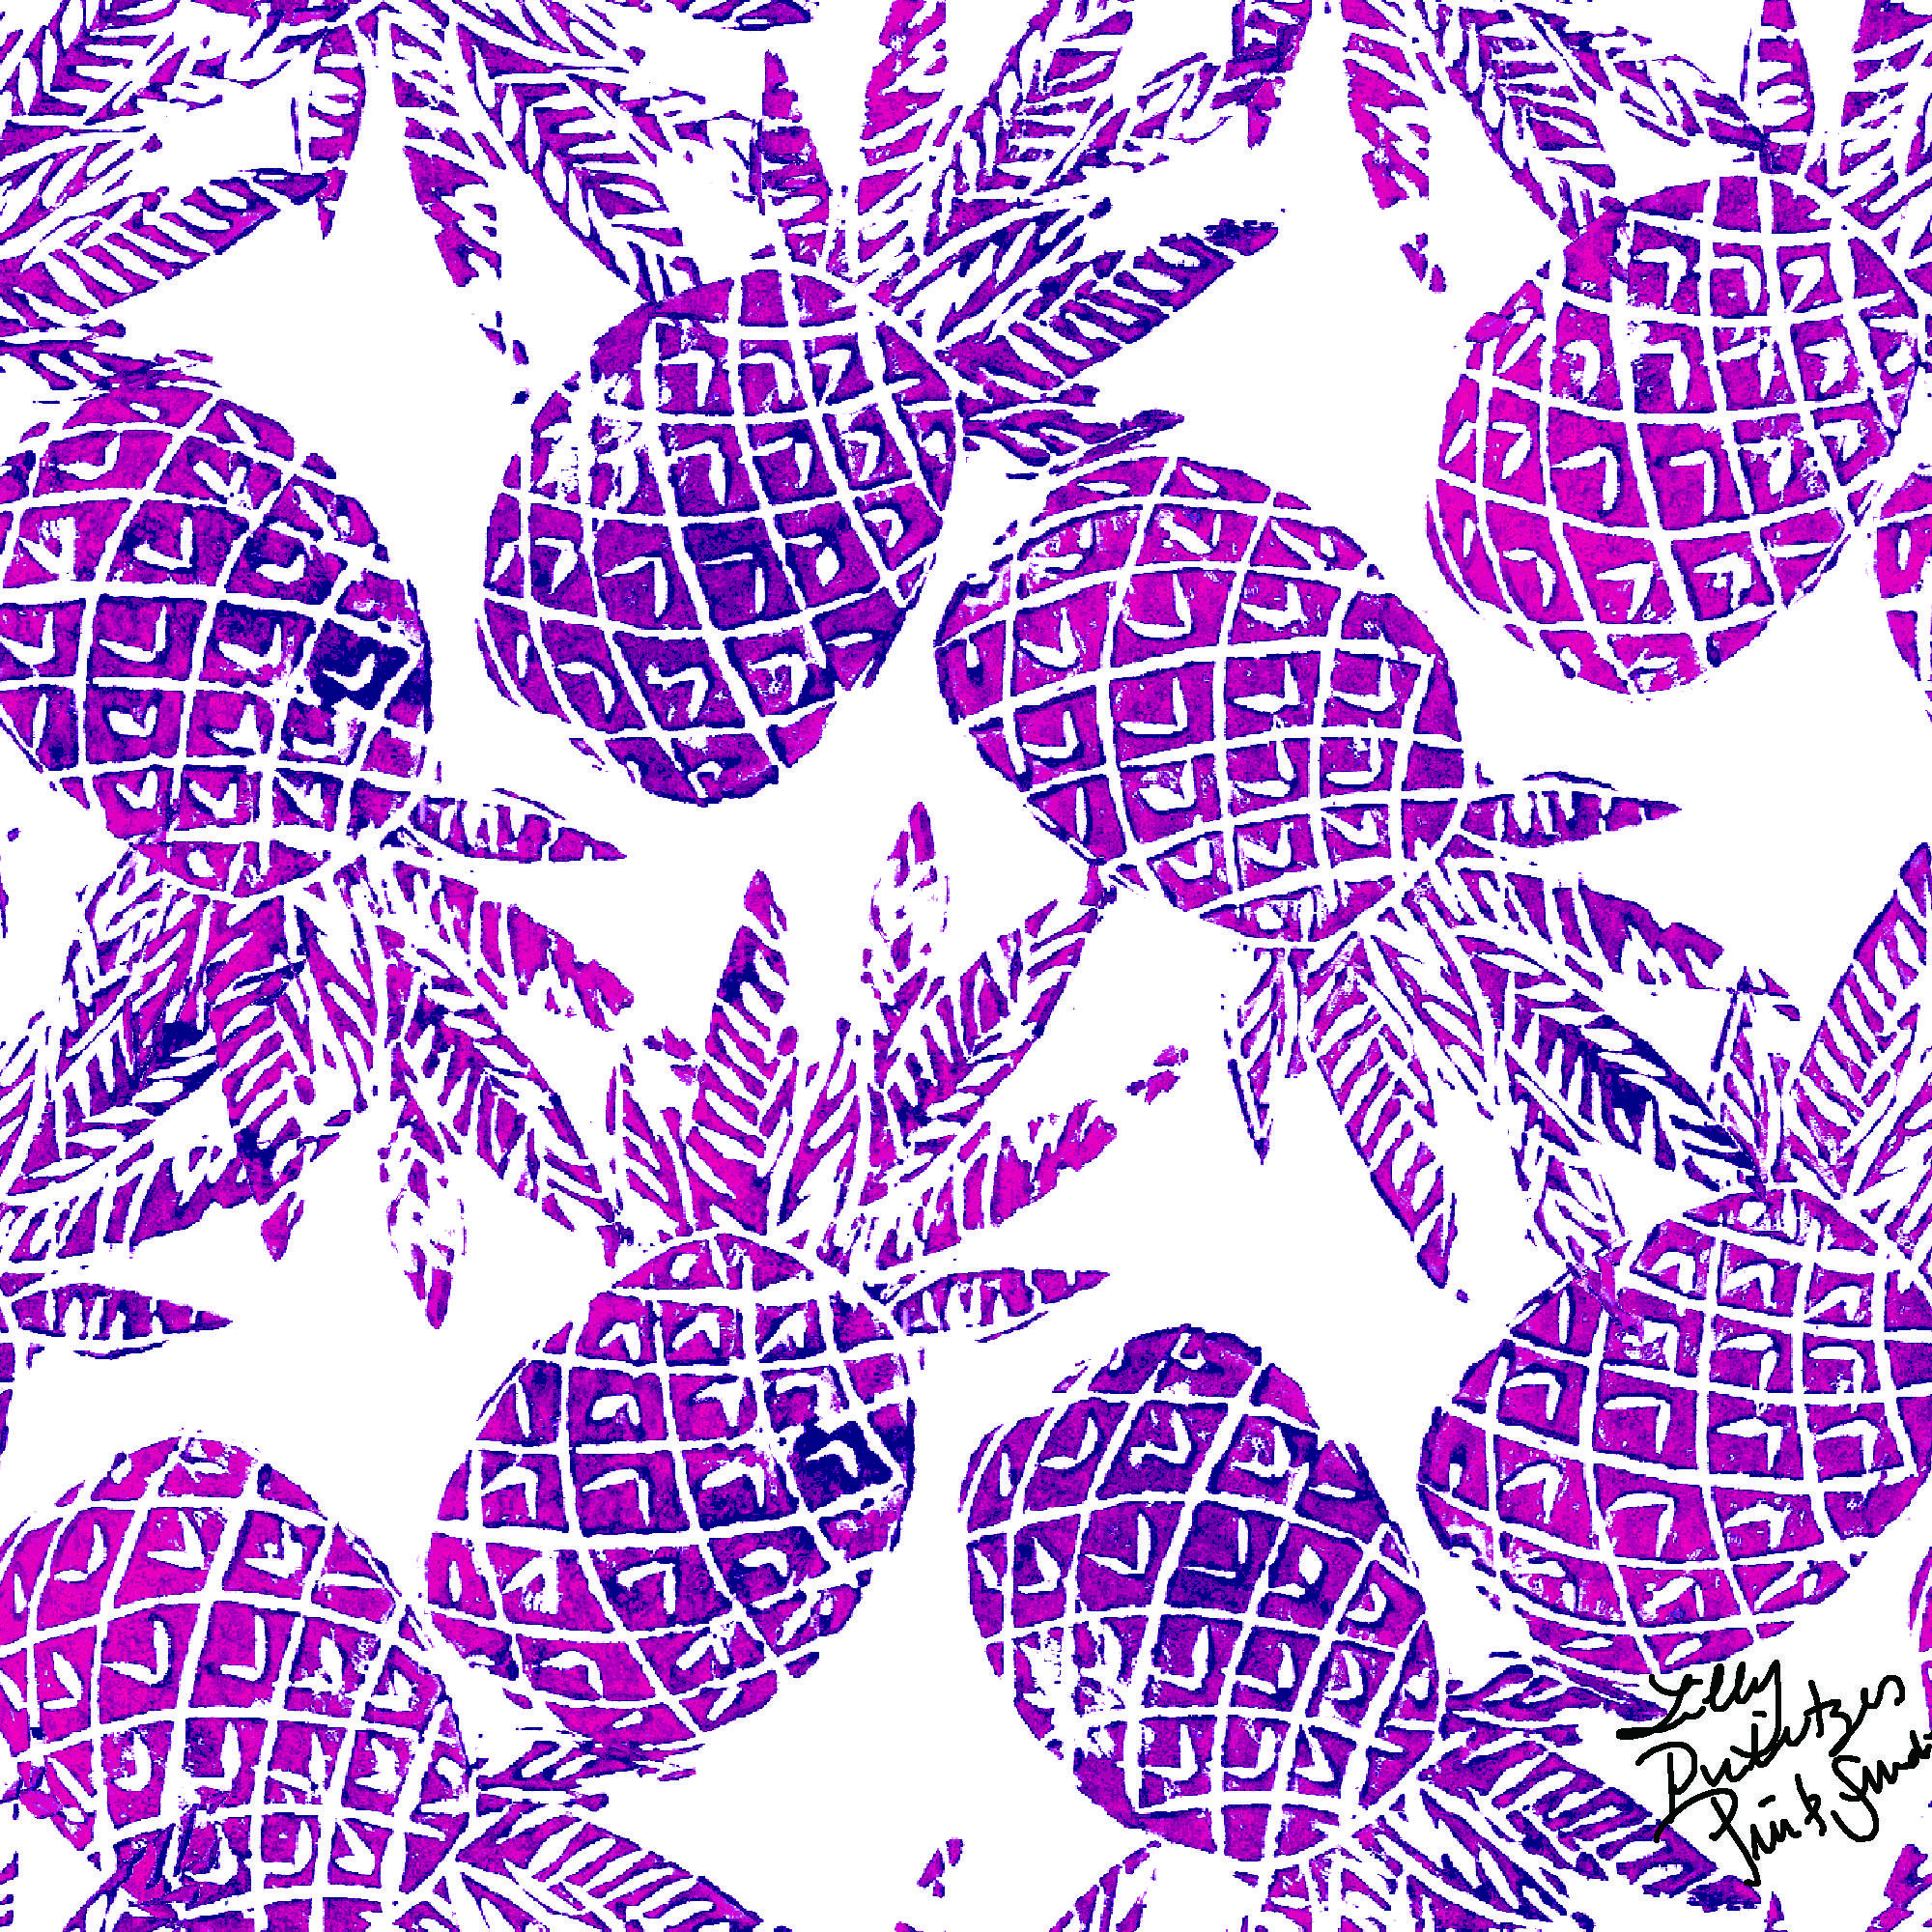 sweet to the core lilly5x5 lilly 5x5 pinterest prints wallpaper and patterns. Black Bedroom Furniture Sets. Home Design Ideas